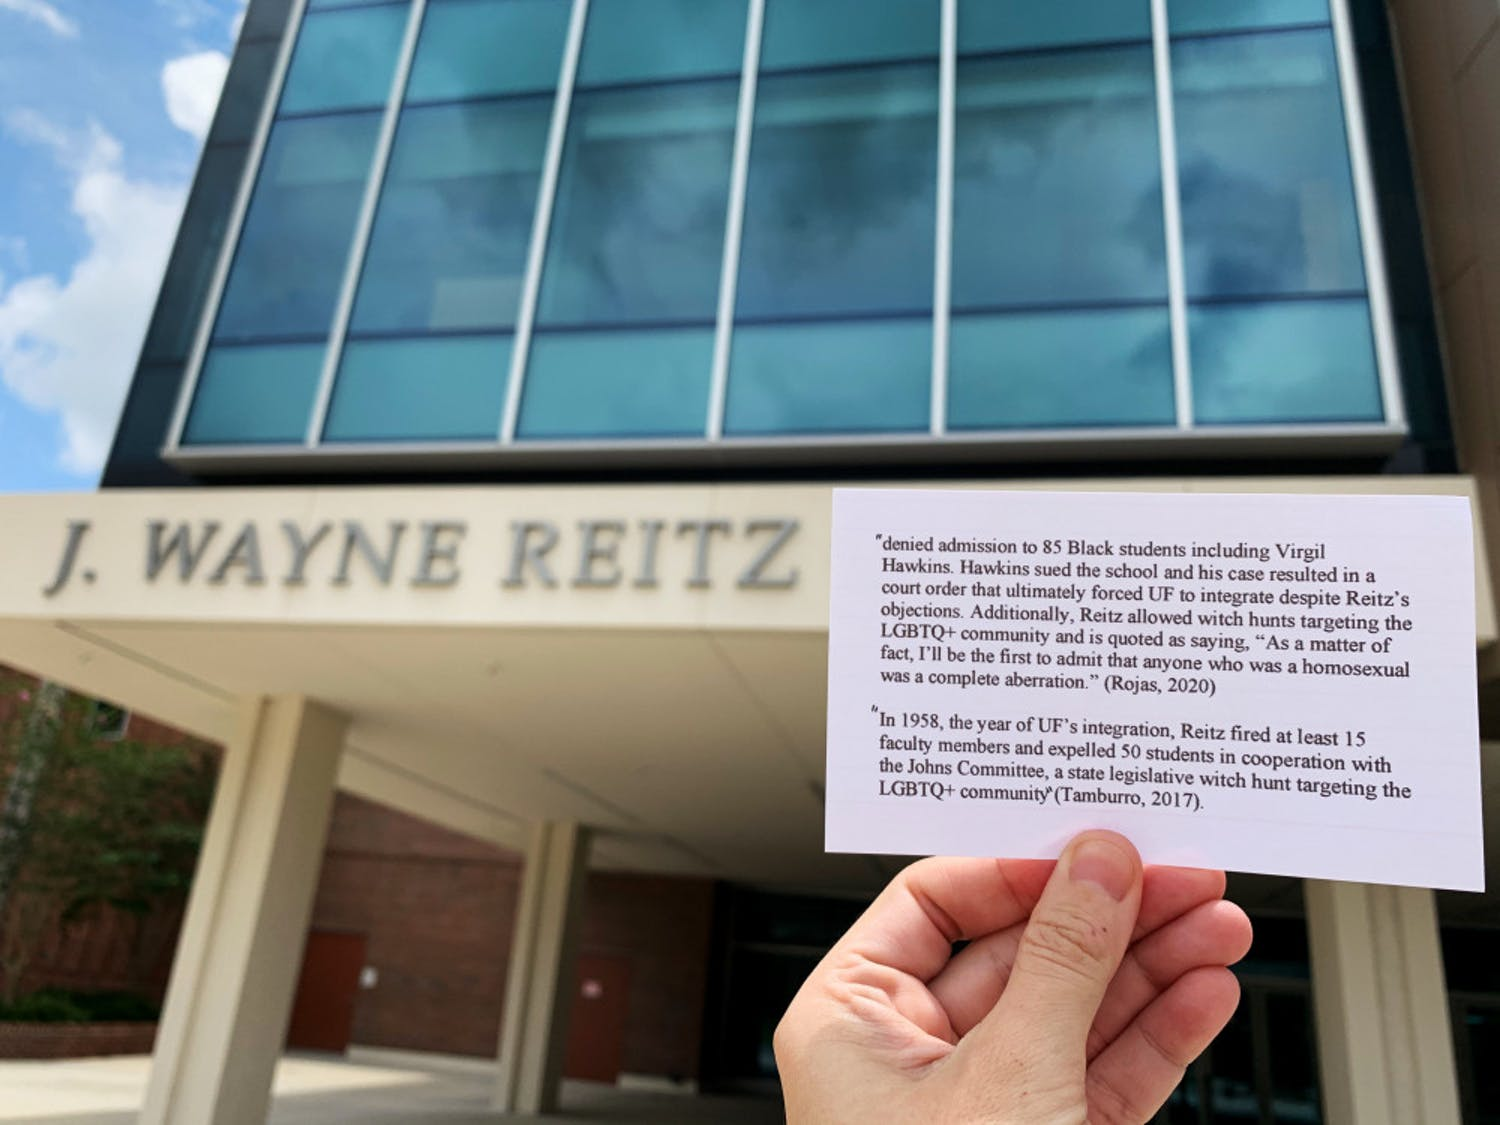 Shelby Boehm, a 28-year-old UF English education Ph.D. student, holds up a piece of paper highlighting J. Wayne Reitz' controversial history with the Reitz Union sign visible in the background. She got the information from Anthony Rojas' petition, andsaid she took the photos while walking around campus becauseshe wanted to do her part in spreading the information to other students and faculty.The photos were posted to Instagram and got hundreds of likes.